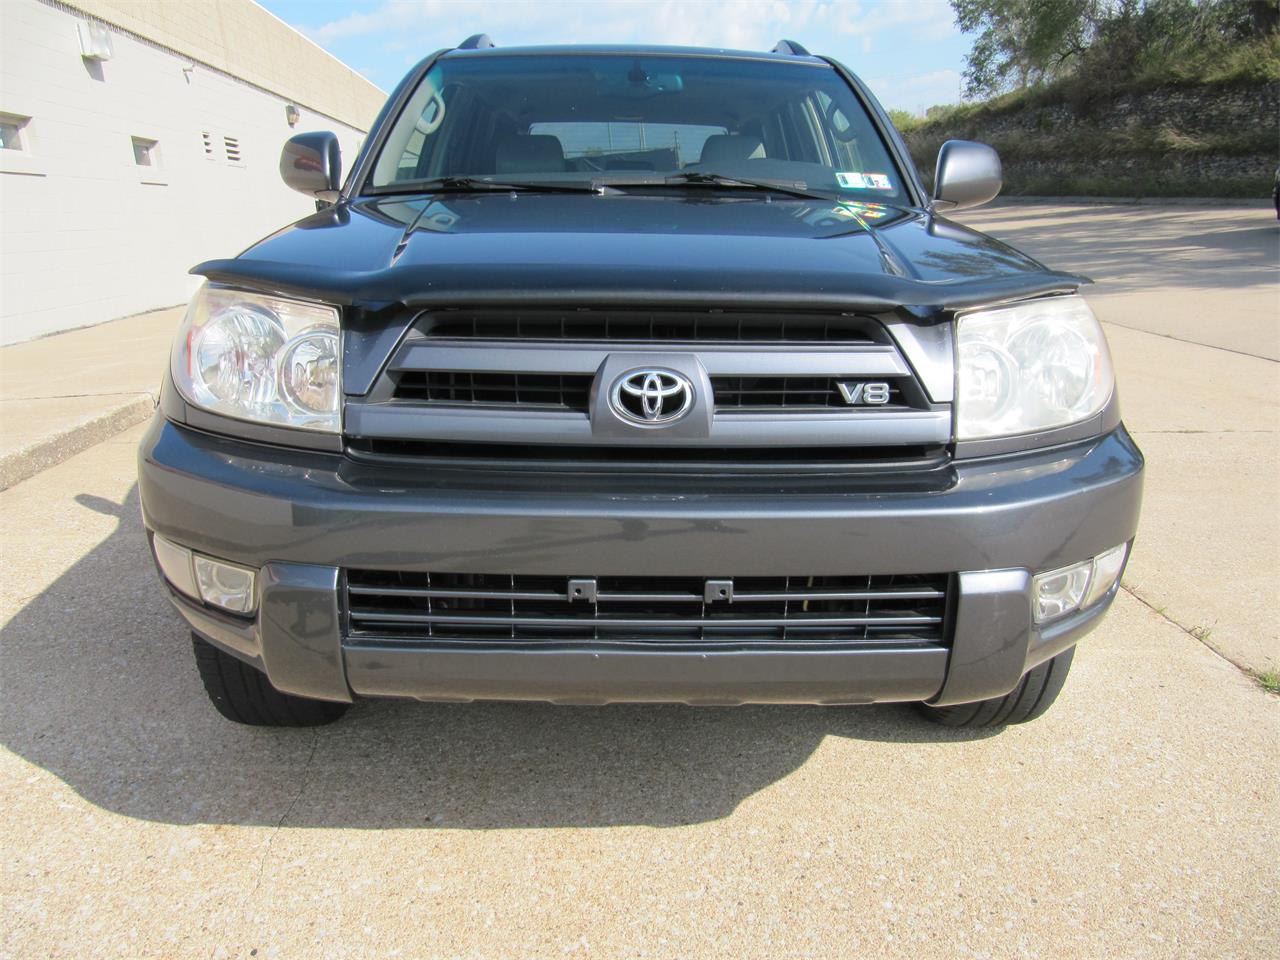 2005 Toyota 4Runner (CC-1265039) for sale in Omaha, Nebraska